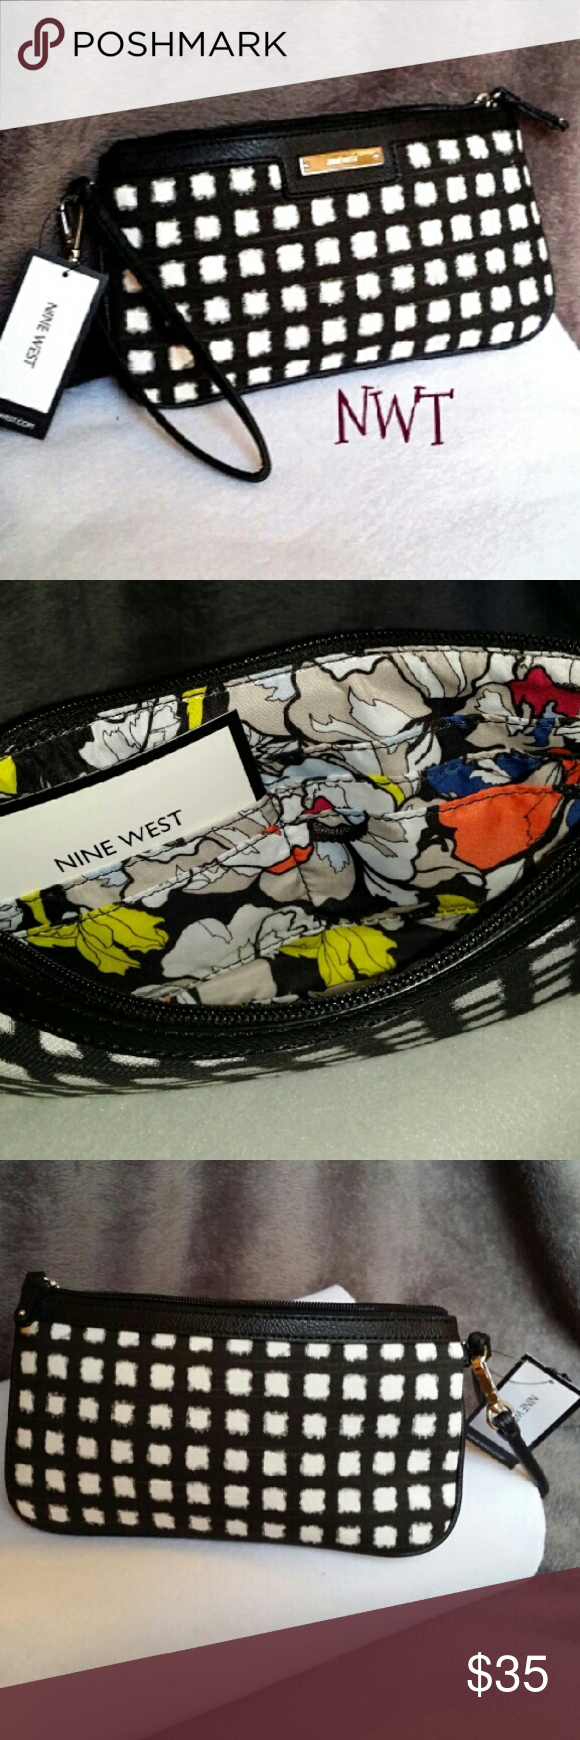 **NEW WITH TAGS** TableTreasure East Wristlet This simple yet fun wristlet by Nine West will surely make you a hit among your friends on girl's night!! Synthetic fabric will complement any outfit whether it's dressy or casual. It is definitely one of the trend-right handbags you'll be reaching for in your closet again and again. Inside vibrant floral print features 6 slip pockets and one zip pocket for organization of your cell phone, cards & money. Zip top closure & wrist strap in  black…